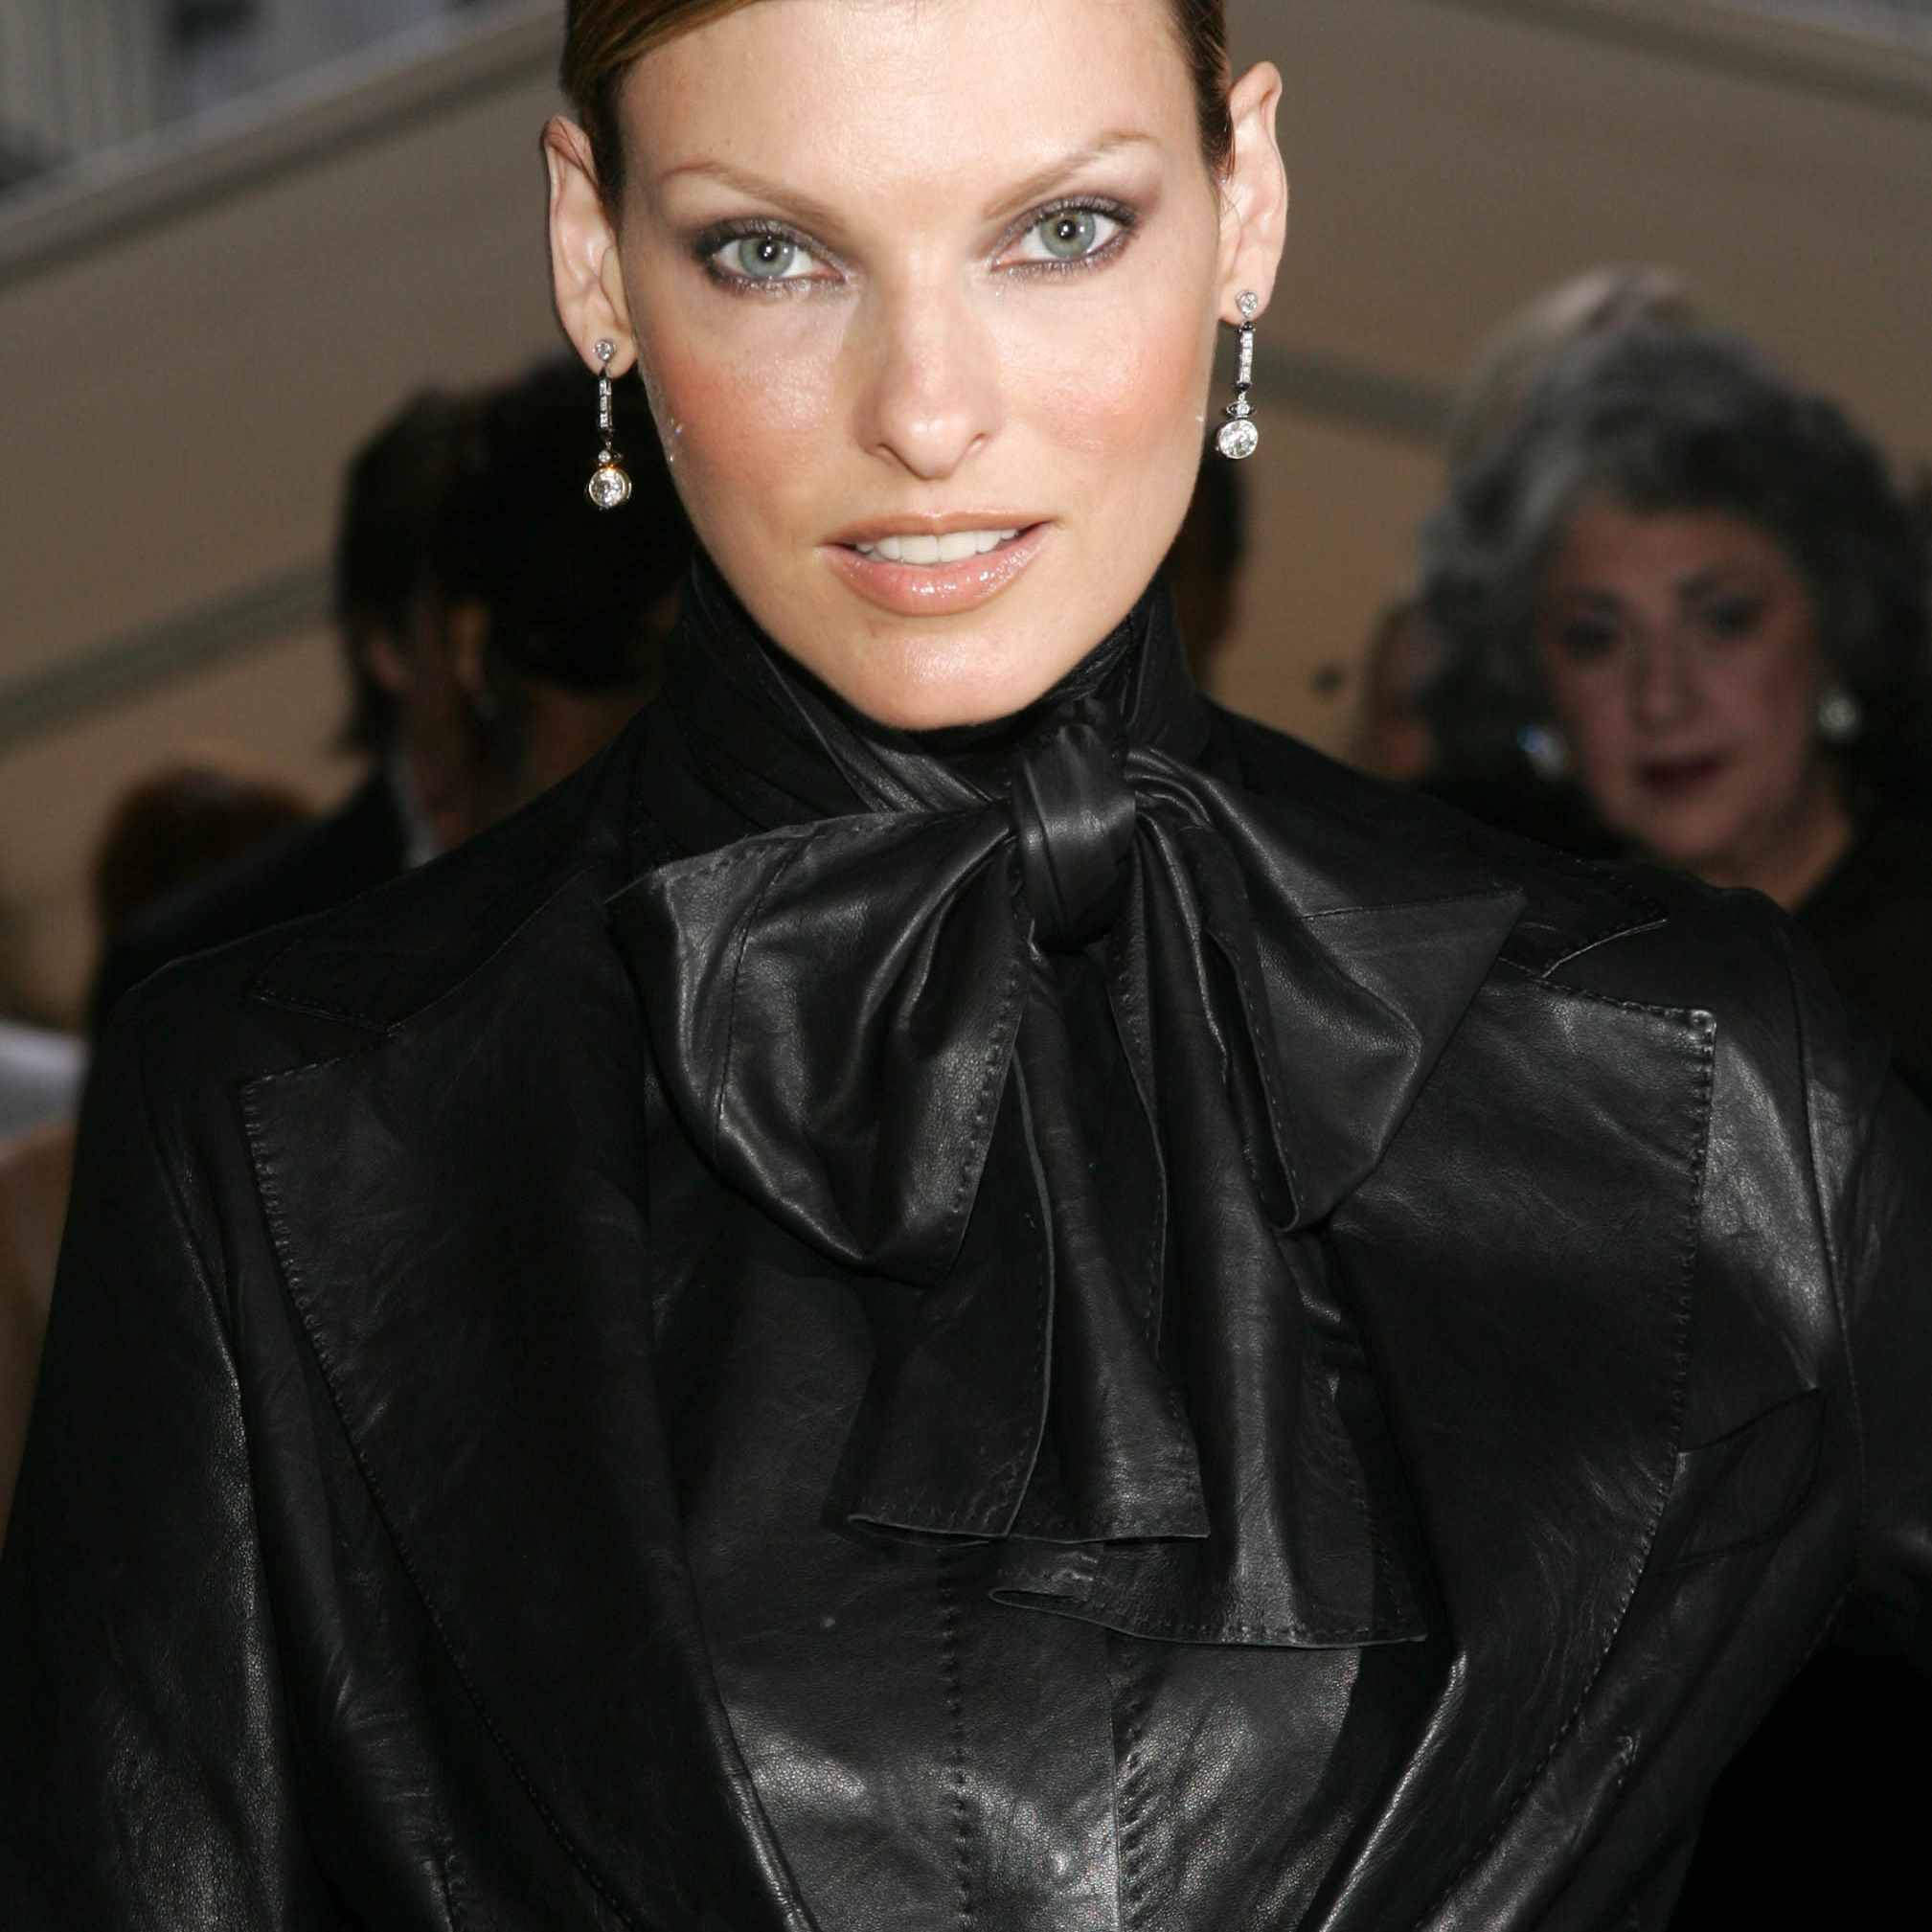 Model Linda Evangelista attends the 'Indiana Jones and the Kingdom of the Crystal Skull' premiere at the Palais des Festivals during the 61st Cannes International Film Festival on May 18, 2008 in Cannes, France.